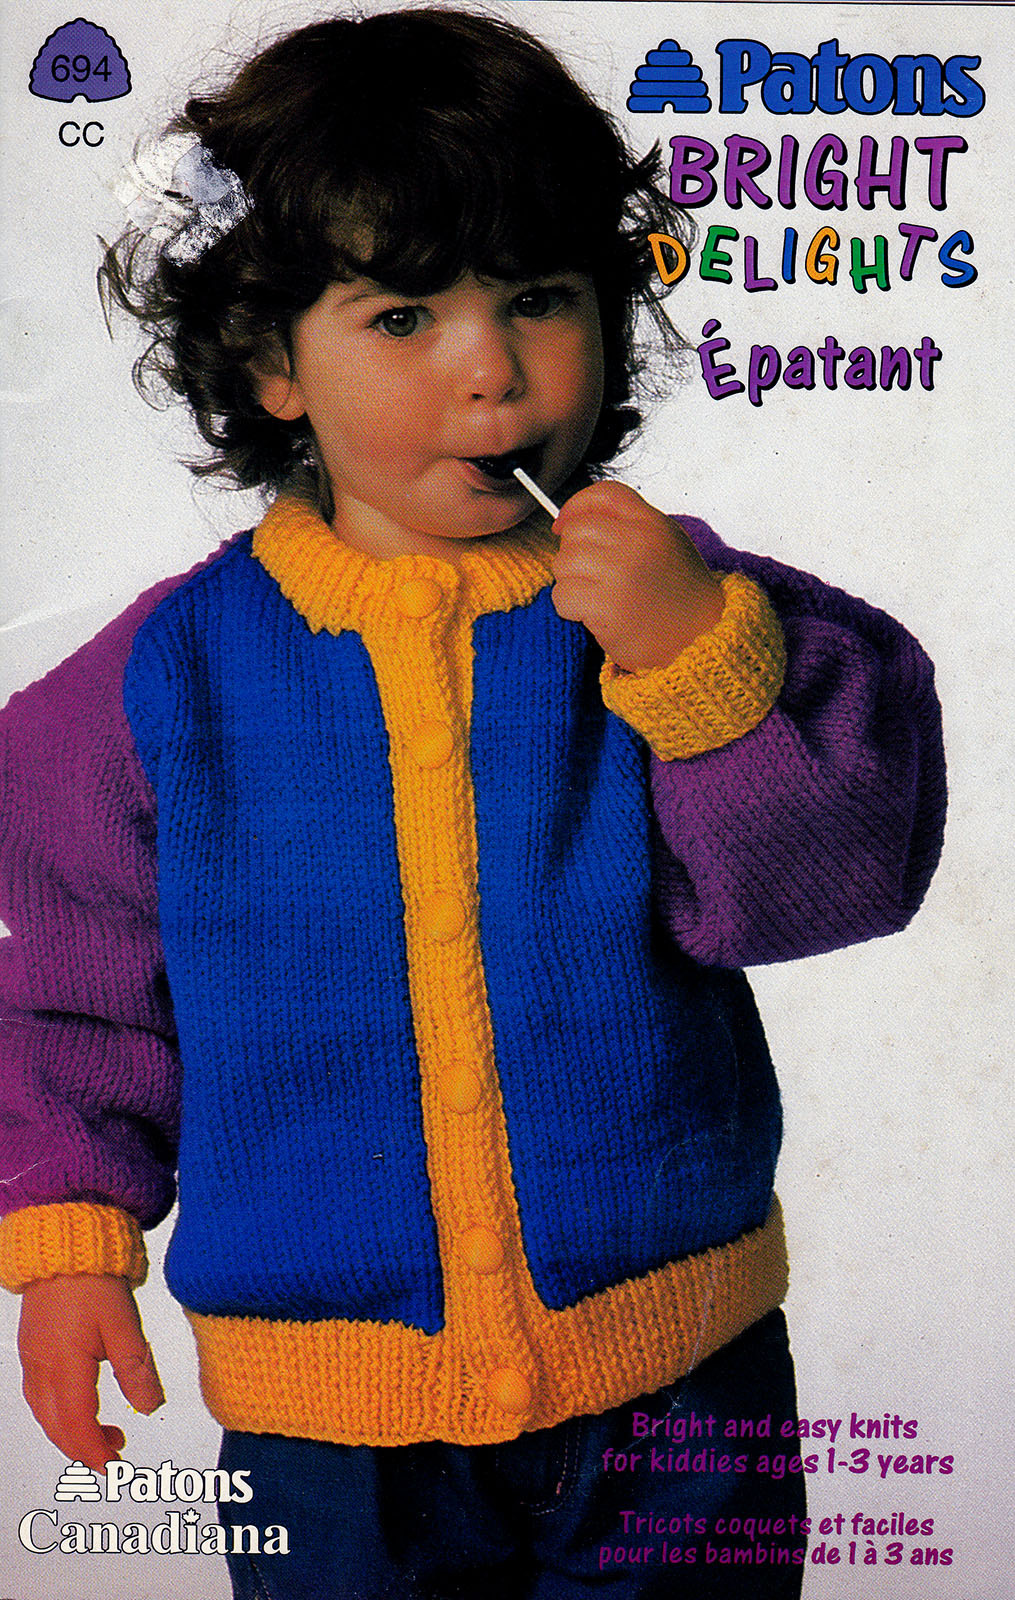 Primary image for BRIGHT DELIGHTS KIDS KNITS SIZES 1 TO 3 PATONS 694 KNITTING WORSTED